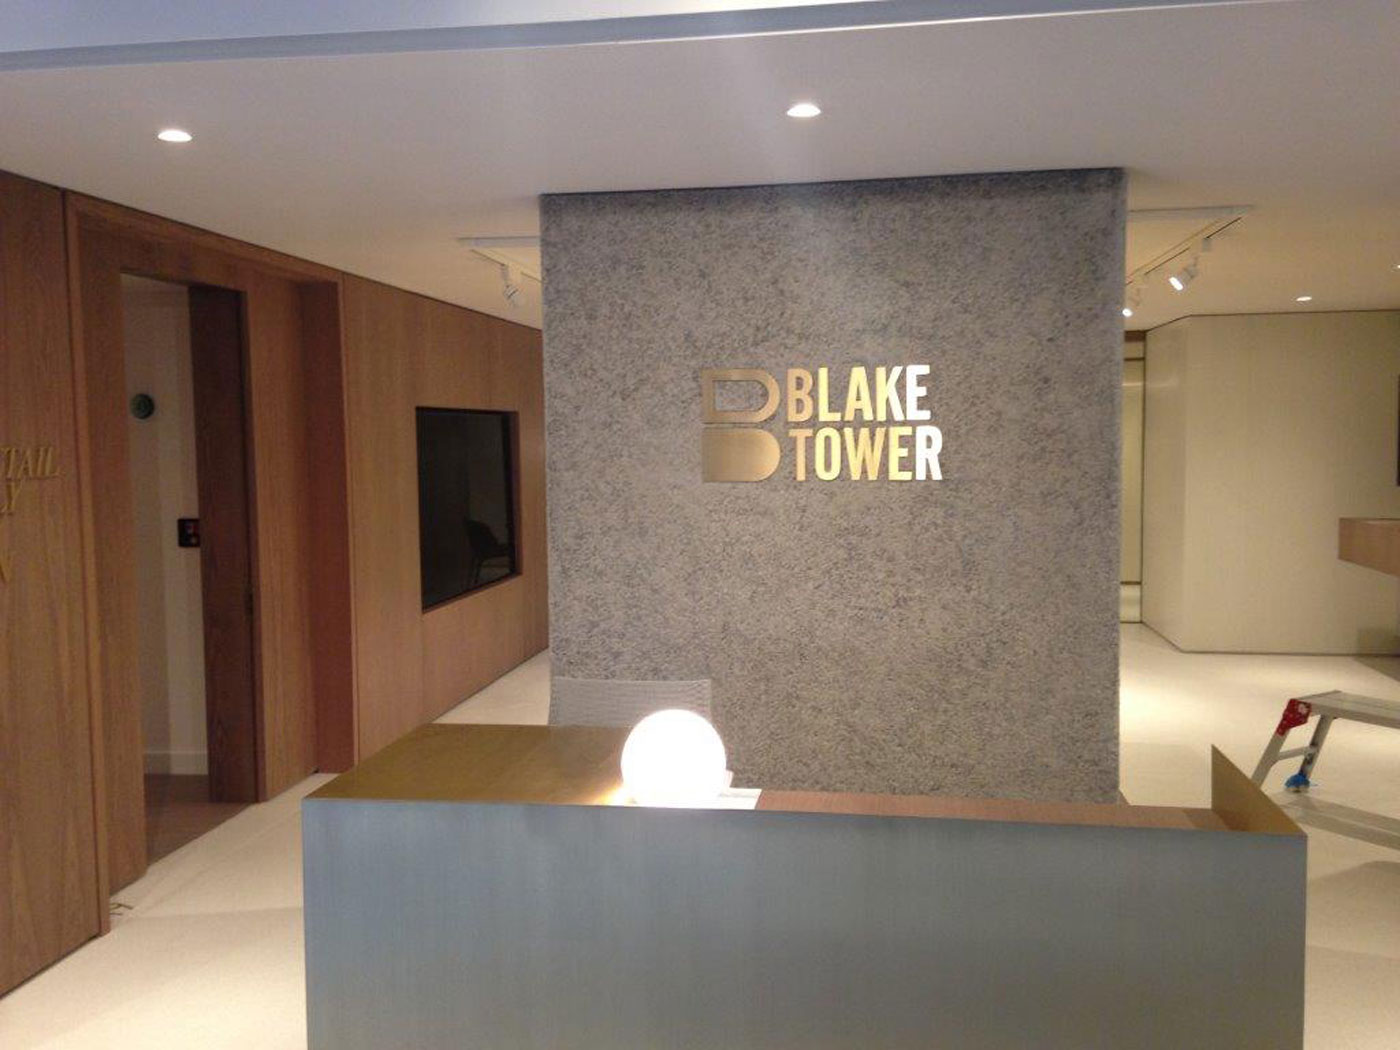 Blake Tower, Fann Street, London